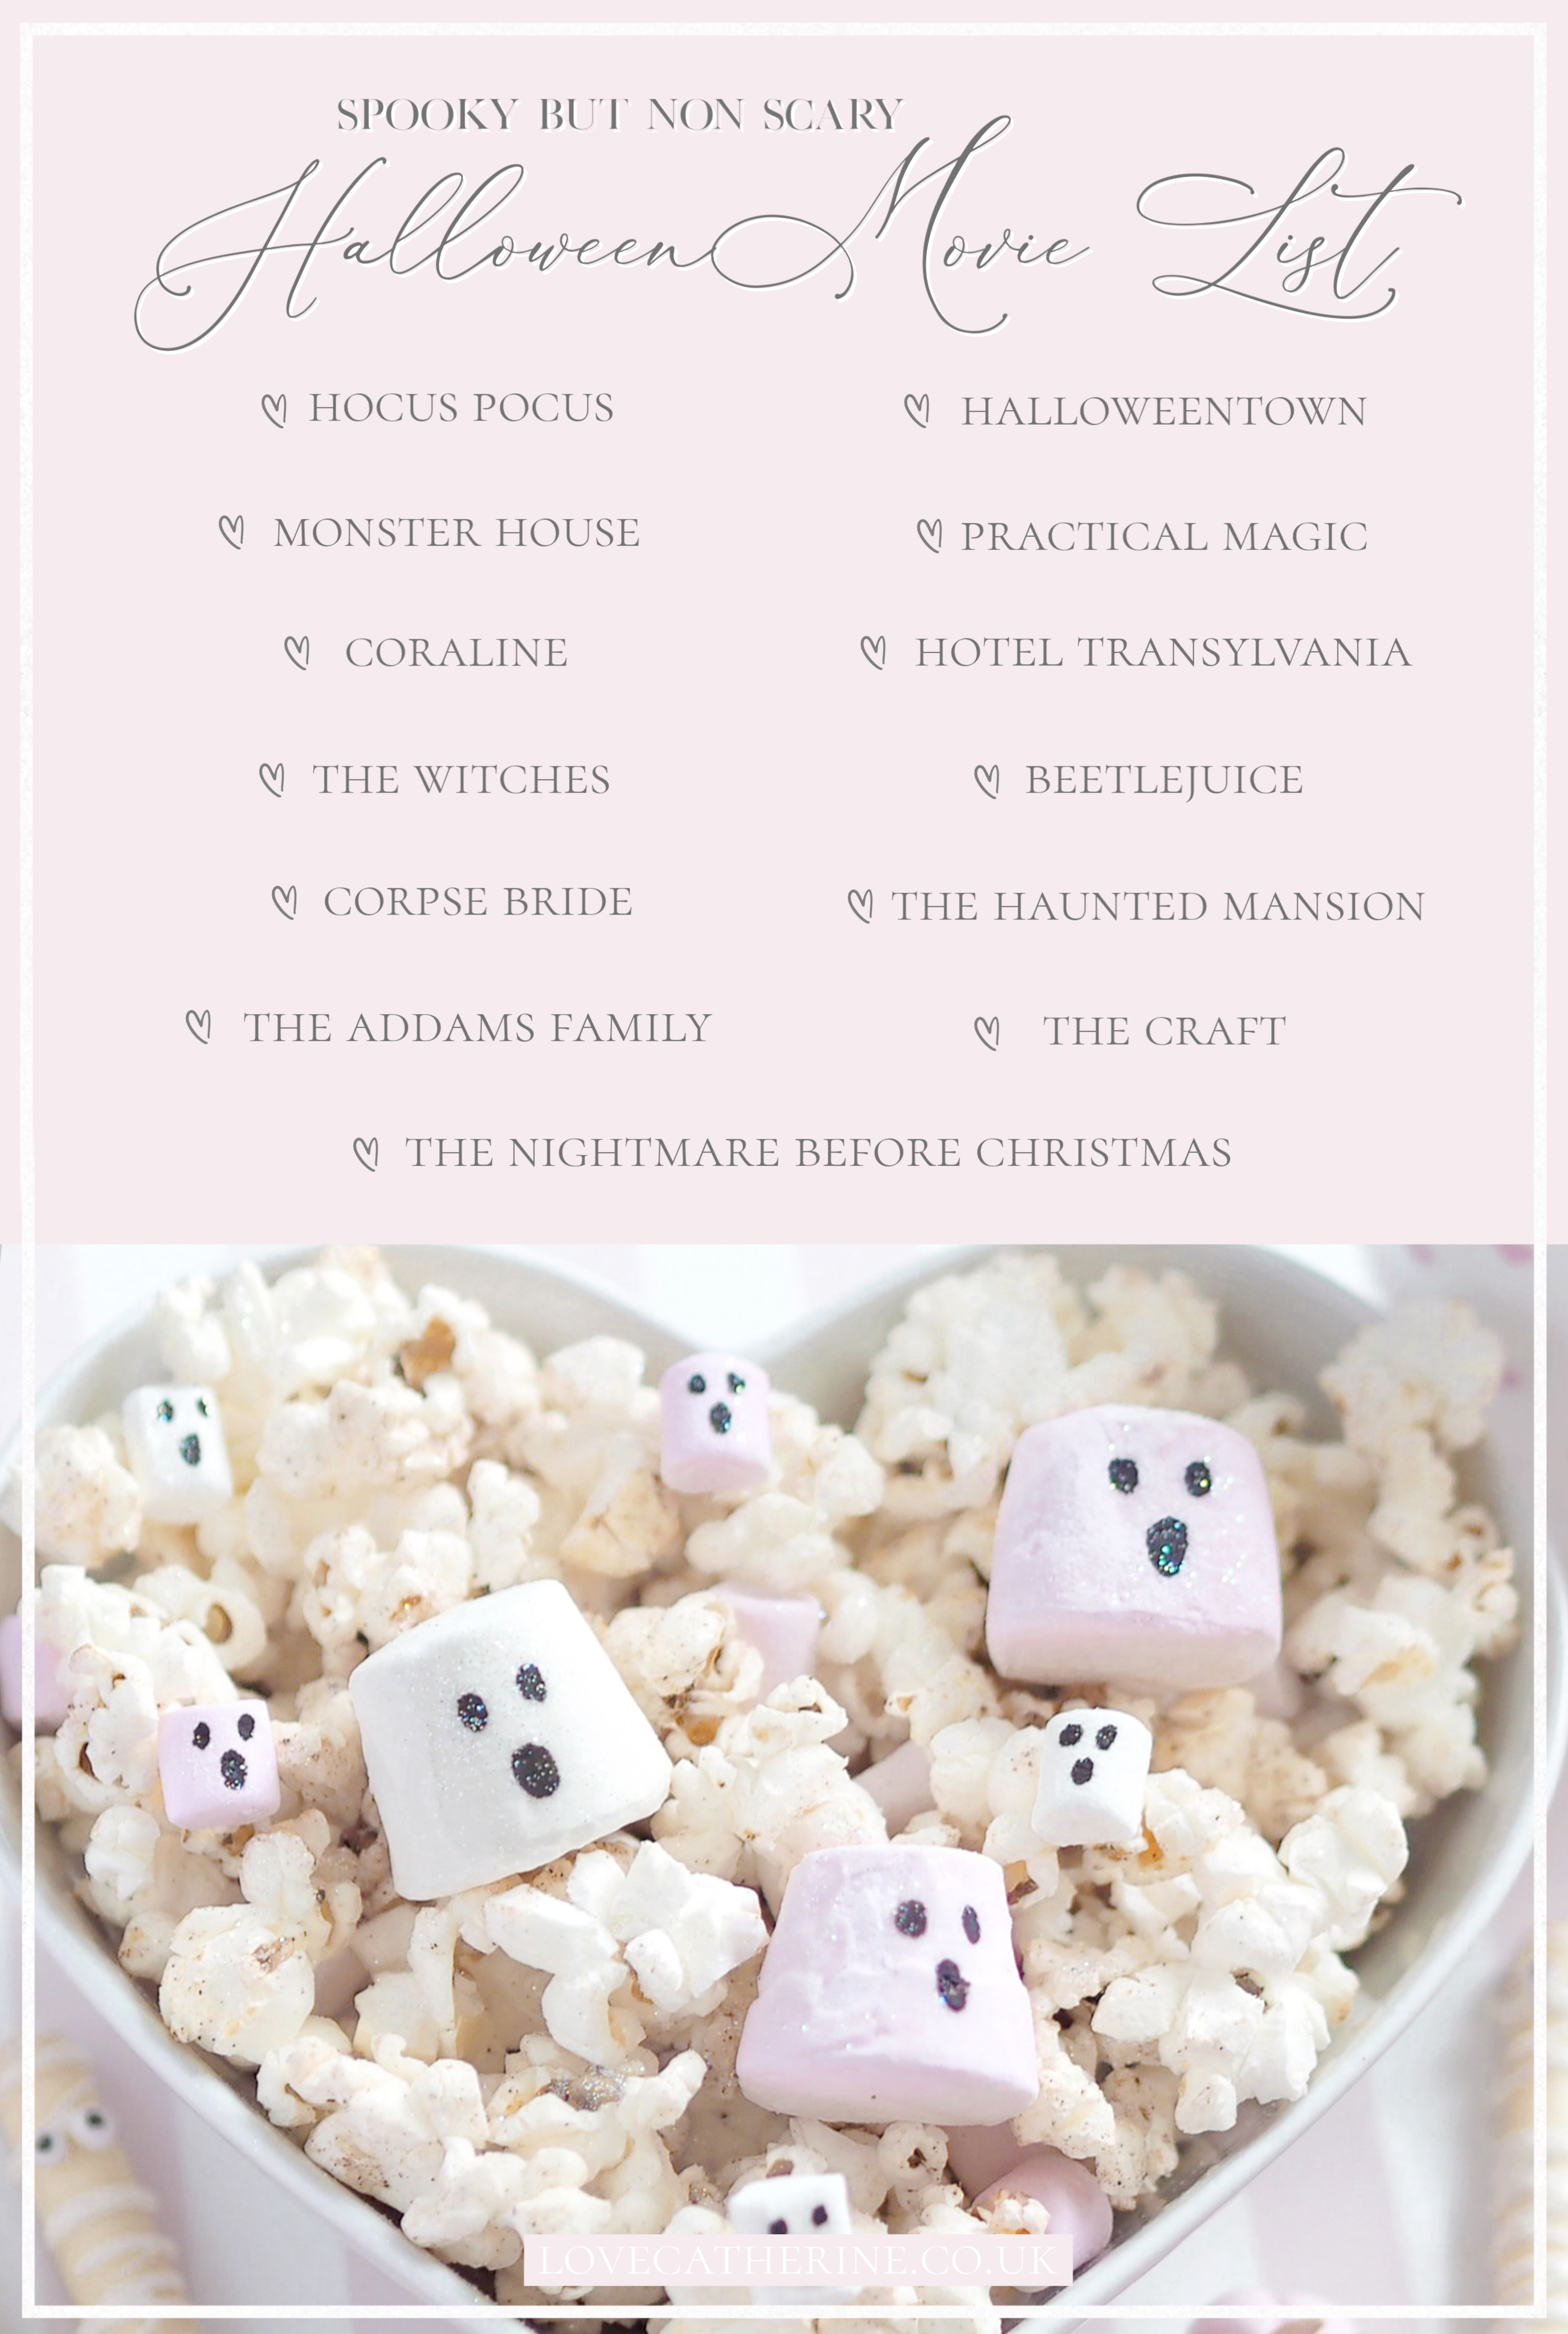 Spooky But Non Scary Halloween Movie List | A Girly Halloween Movie Night With 3 Easy Treats